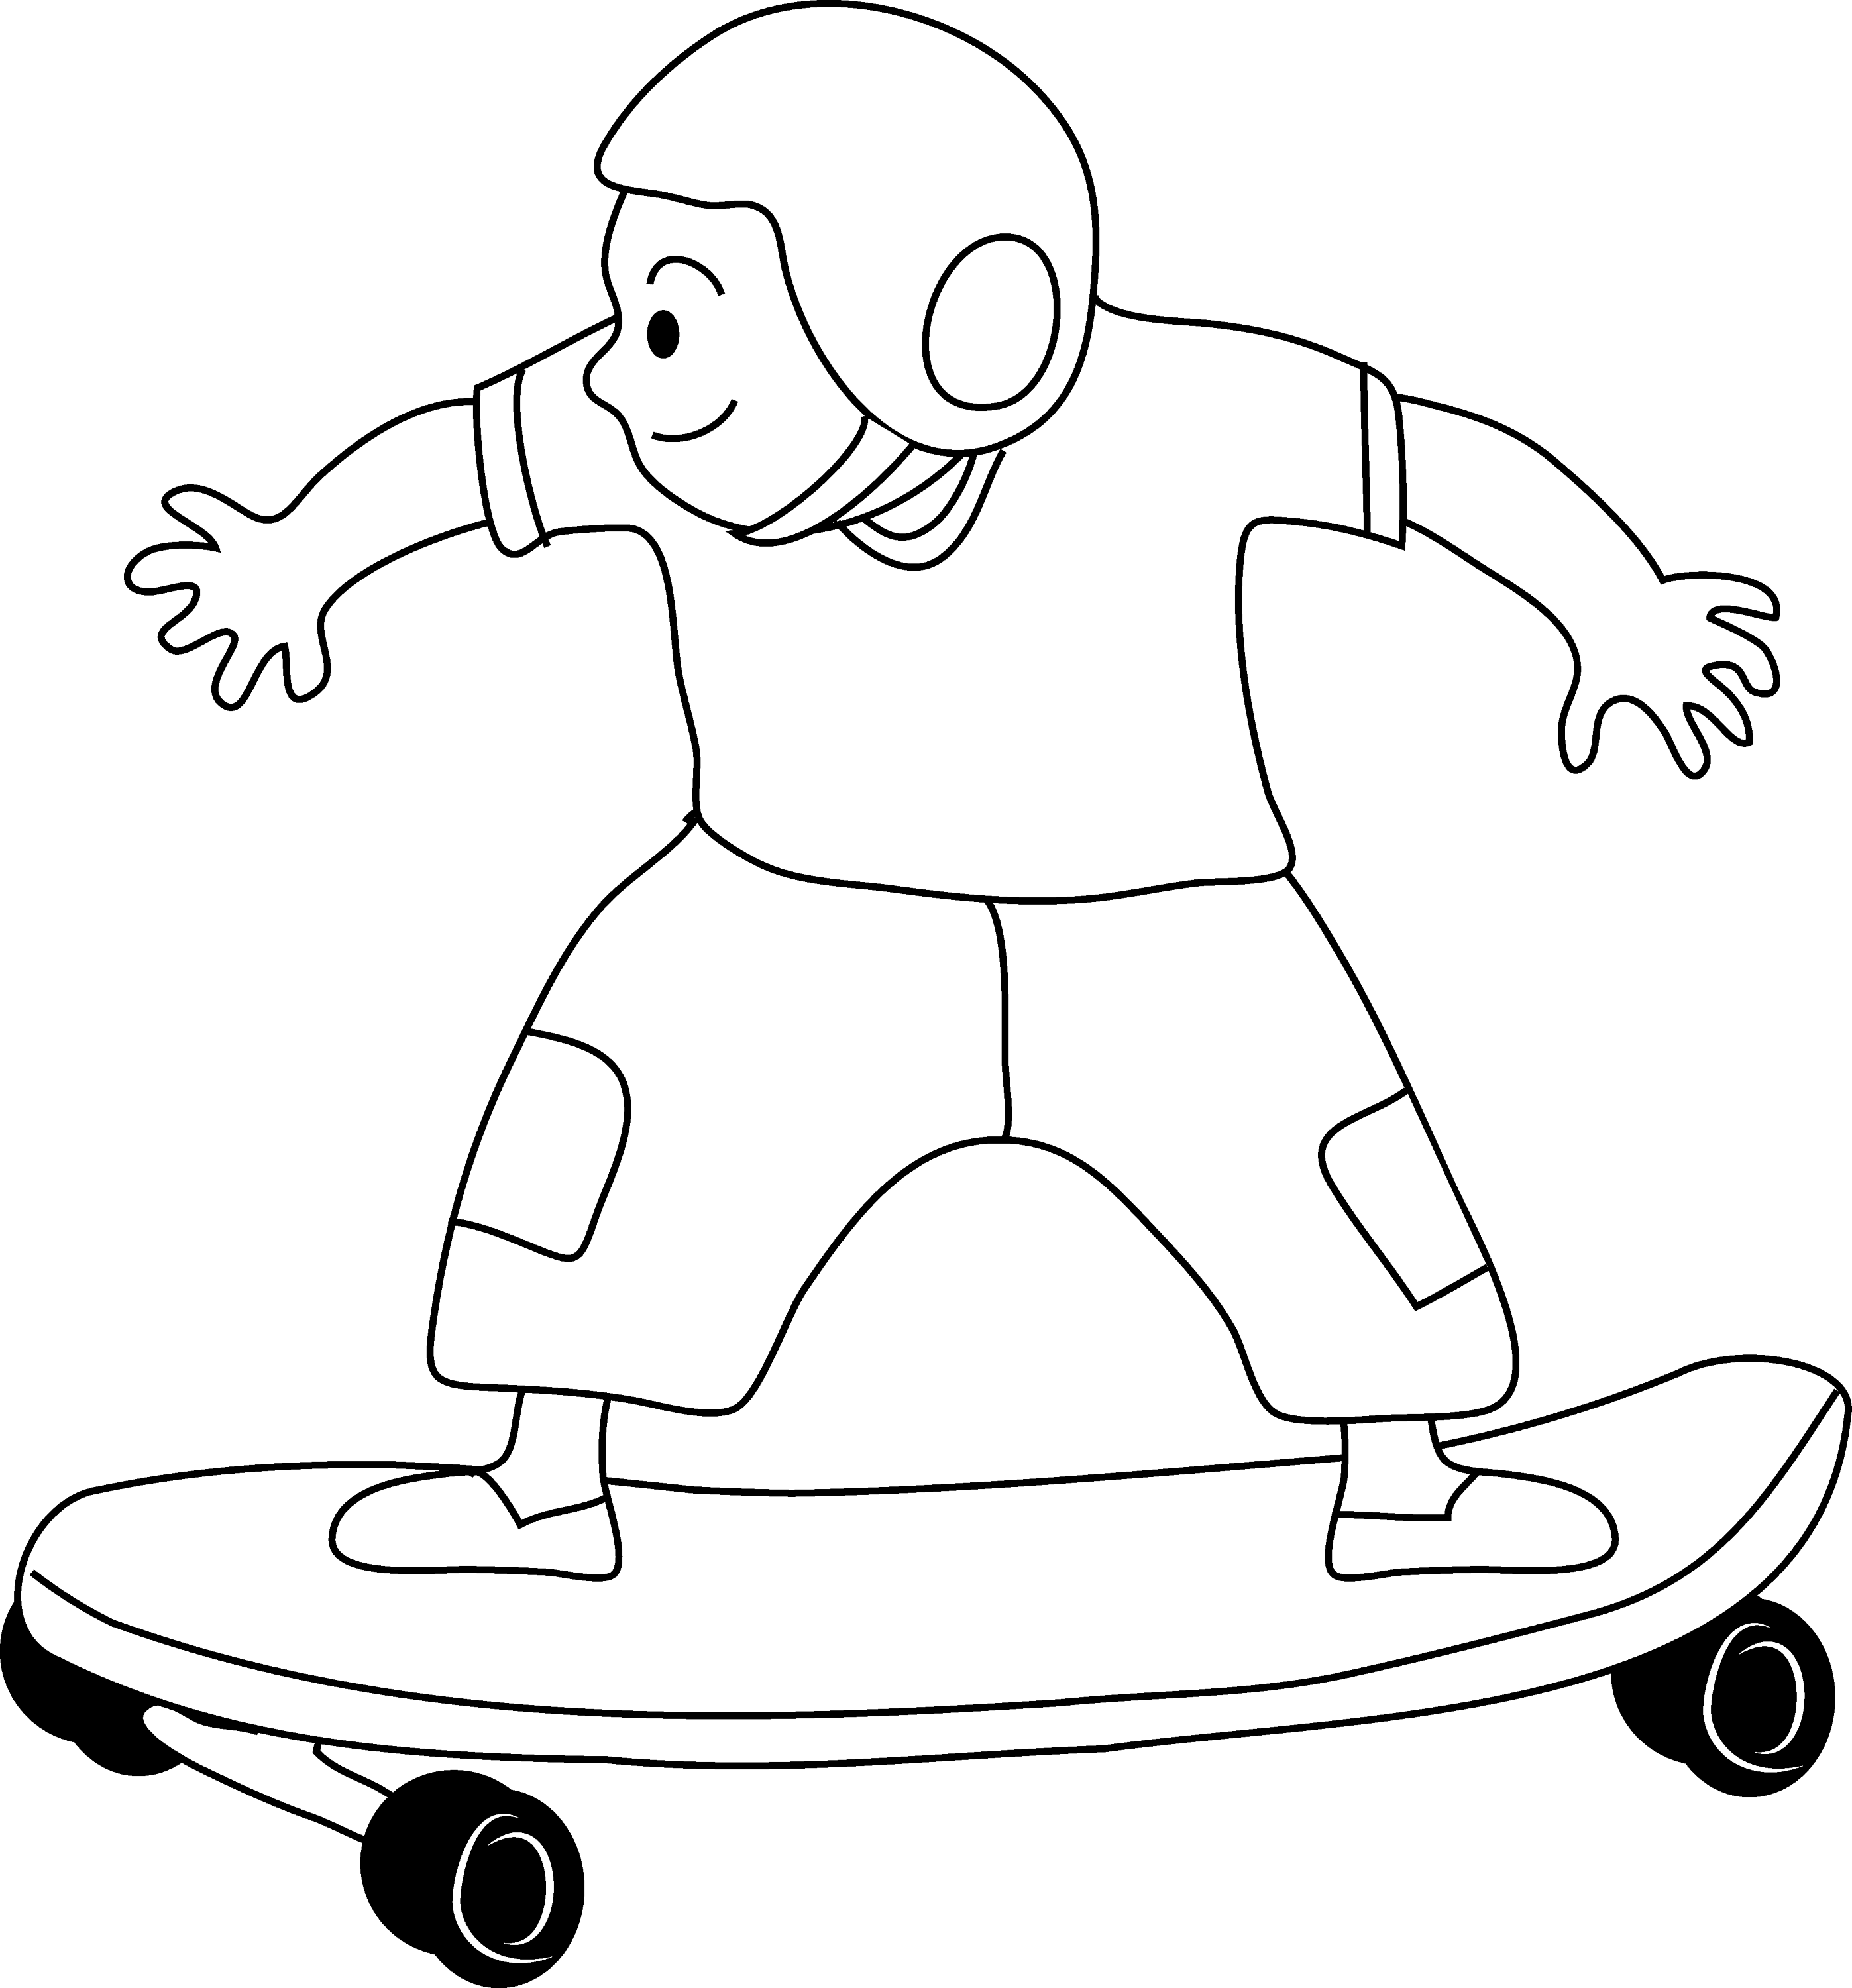 Skateboarding Kid Coloring Page - Free Clip Art